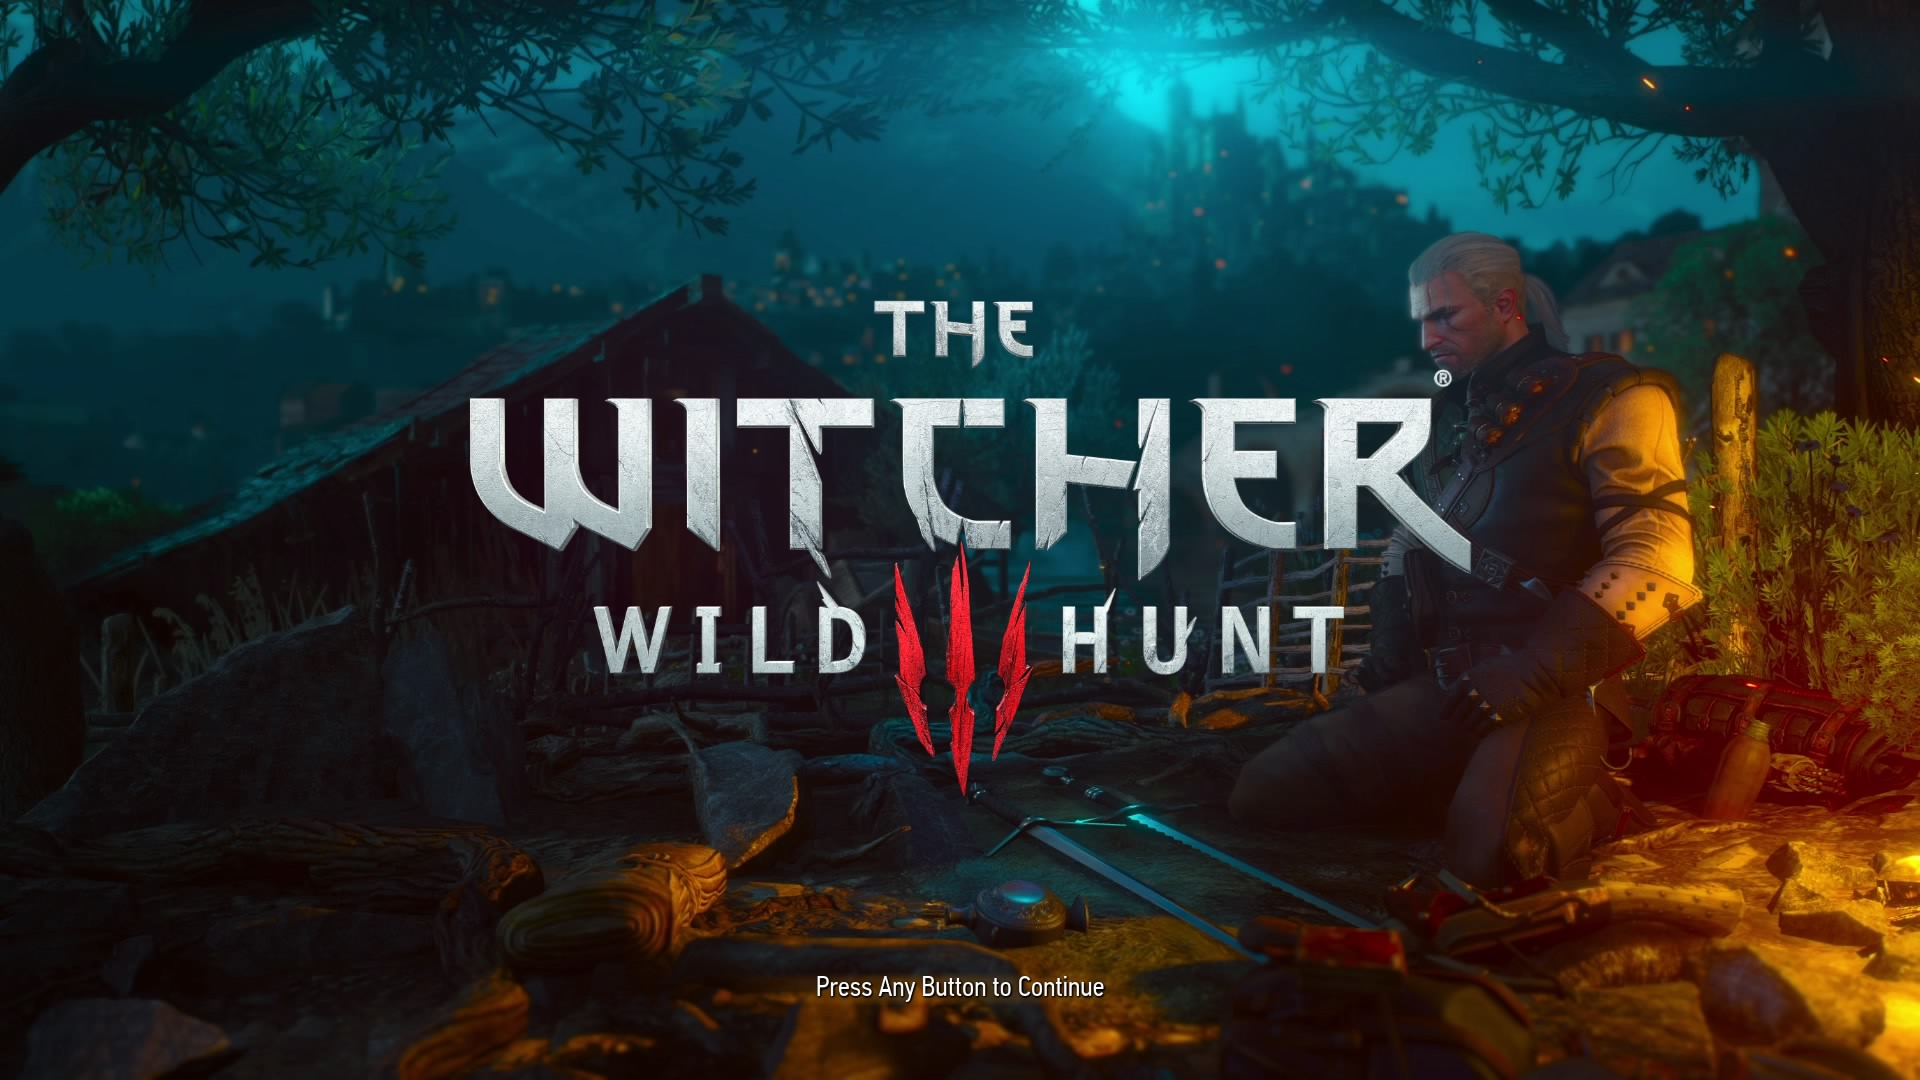 """Geralt kneels by a campfire at night. The title card is overlaid with the game name """"The Witcher 3: Wild Hunt"""""""